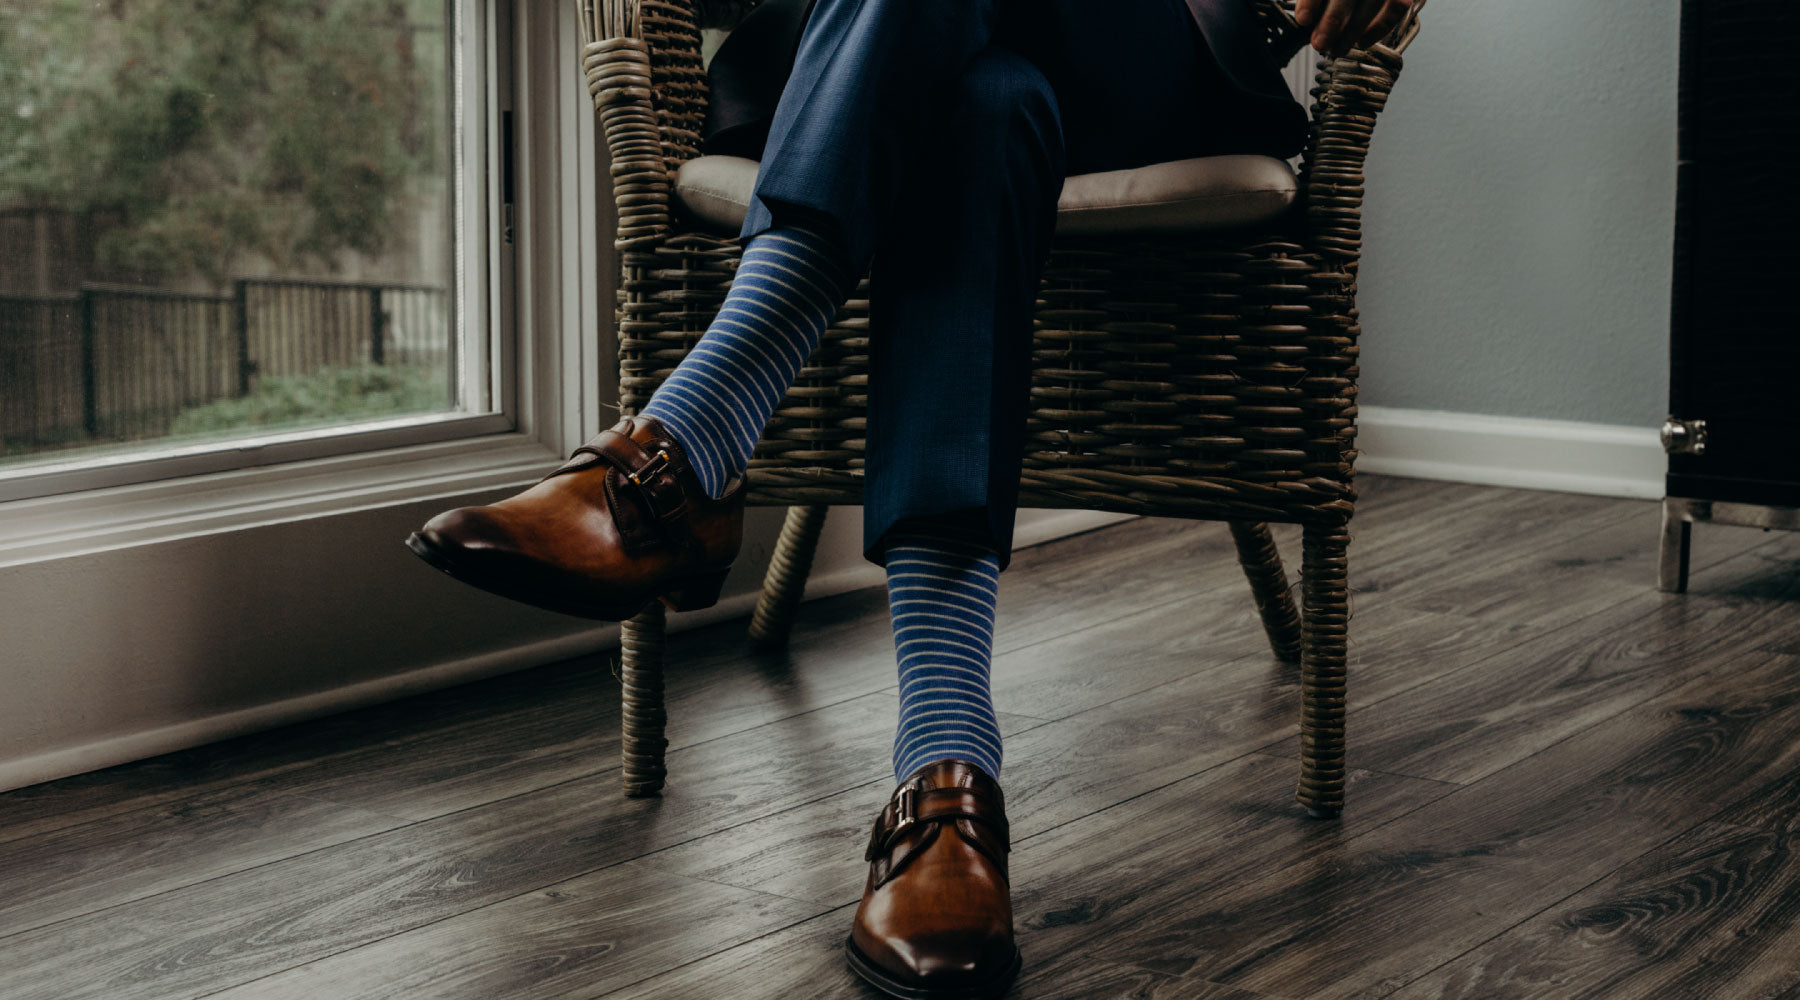 Man crossing his legs wearing blue and white striped men's dress socks with a navy suit and brown shoes